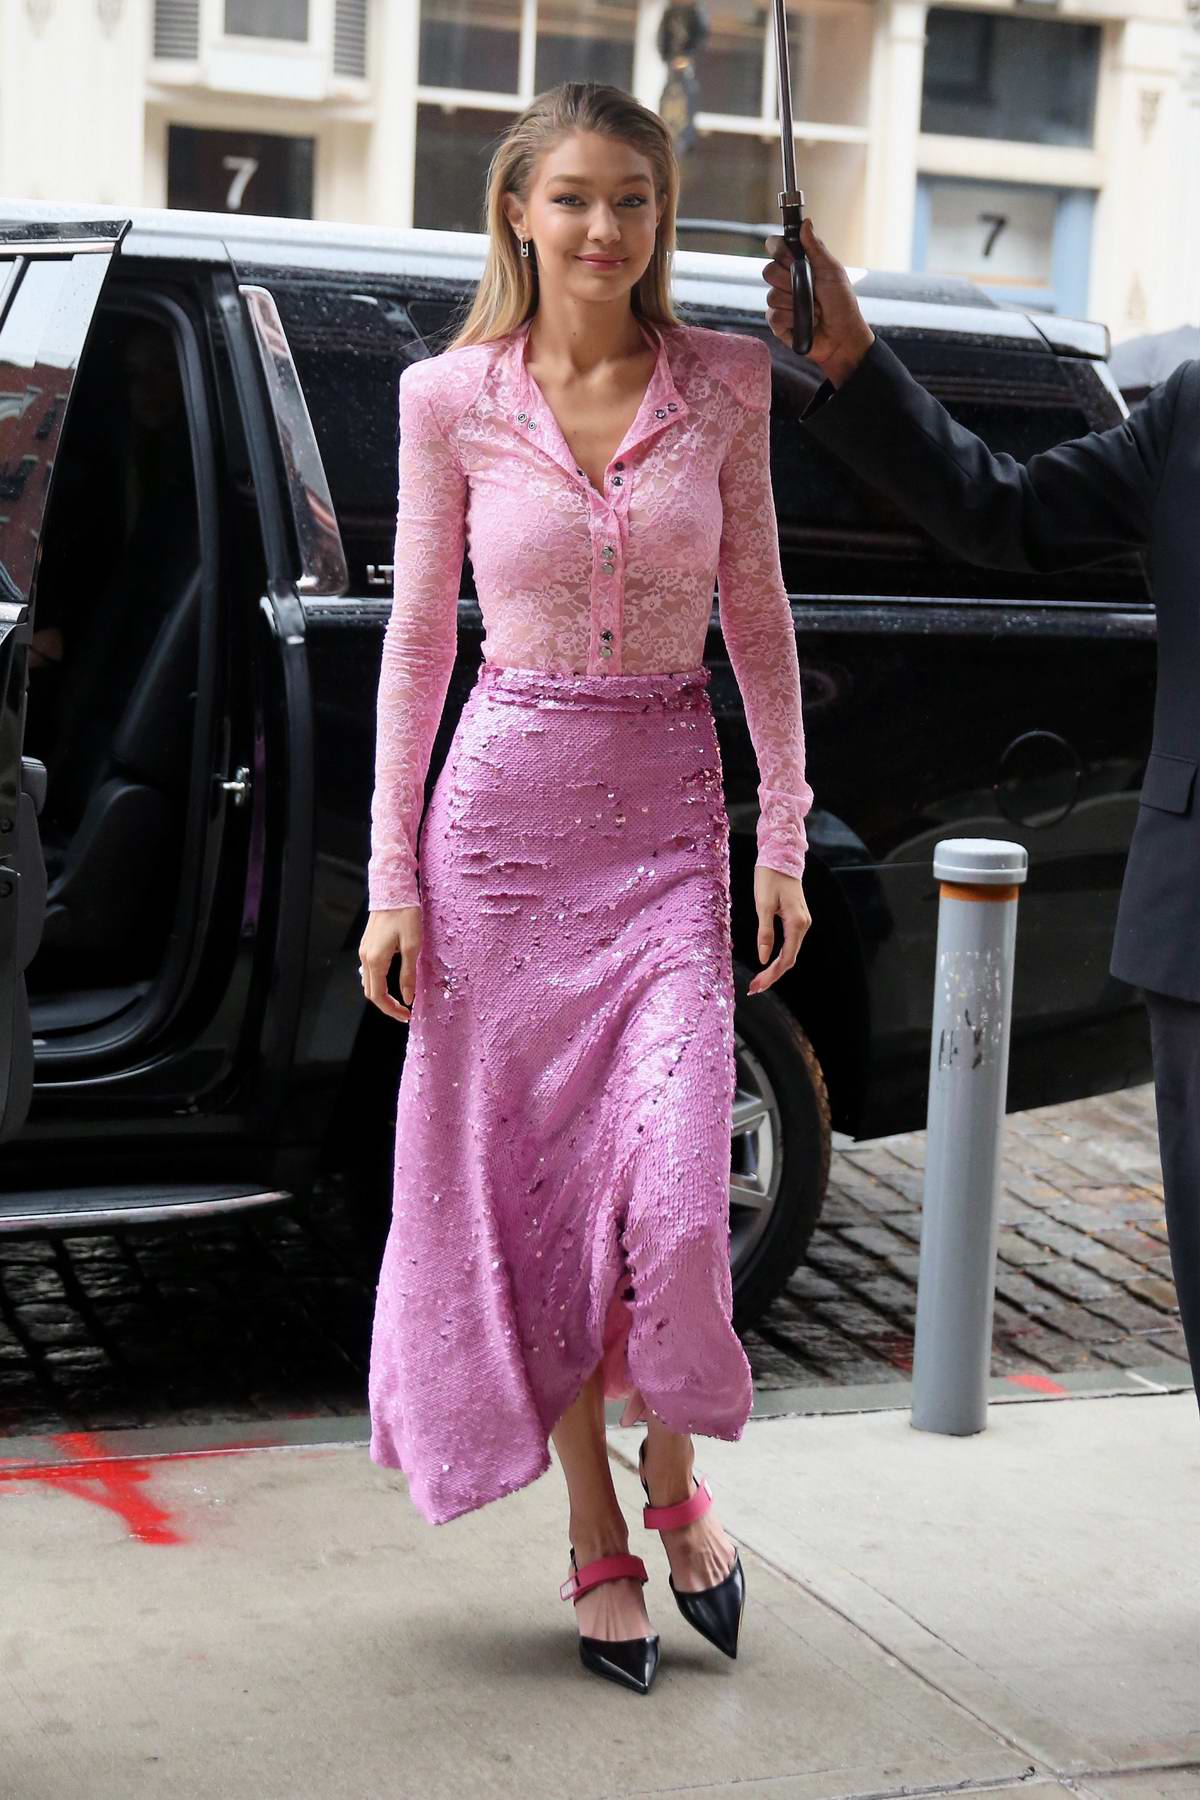 Gigi Hadid wearing a pink outfit as she returns to her apartment in New York City